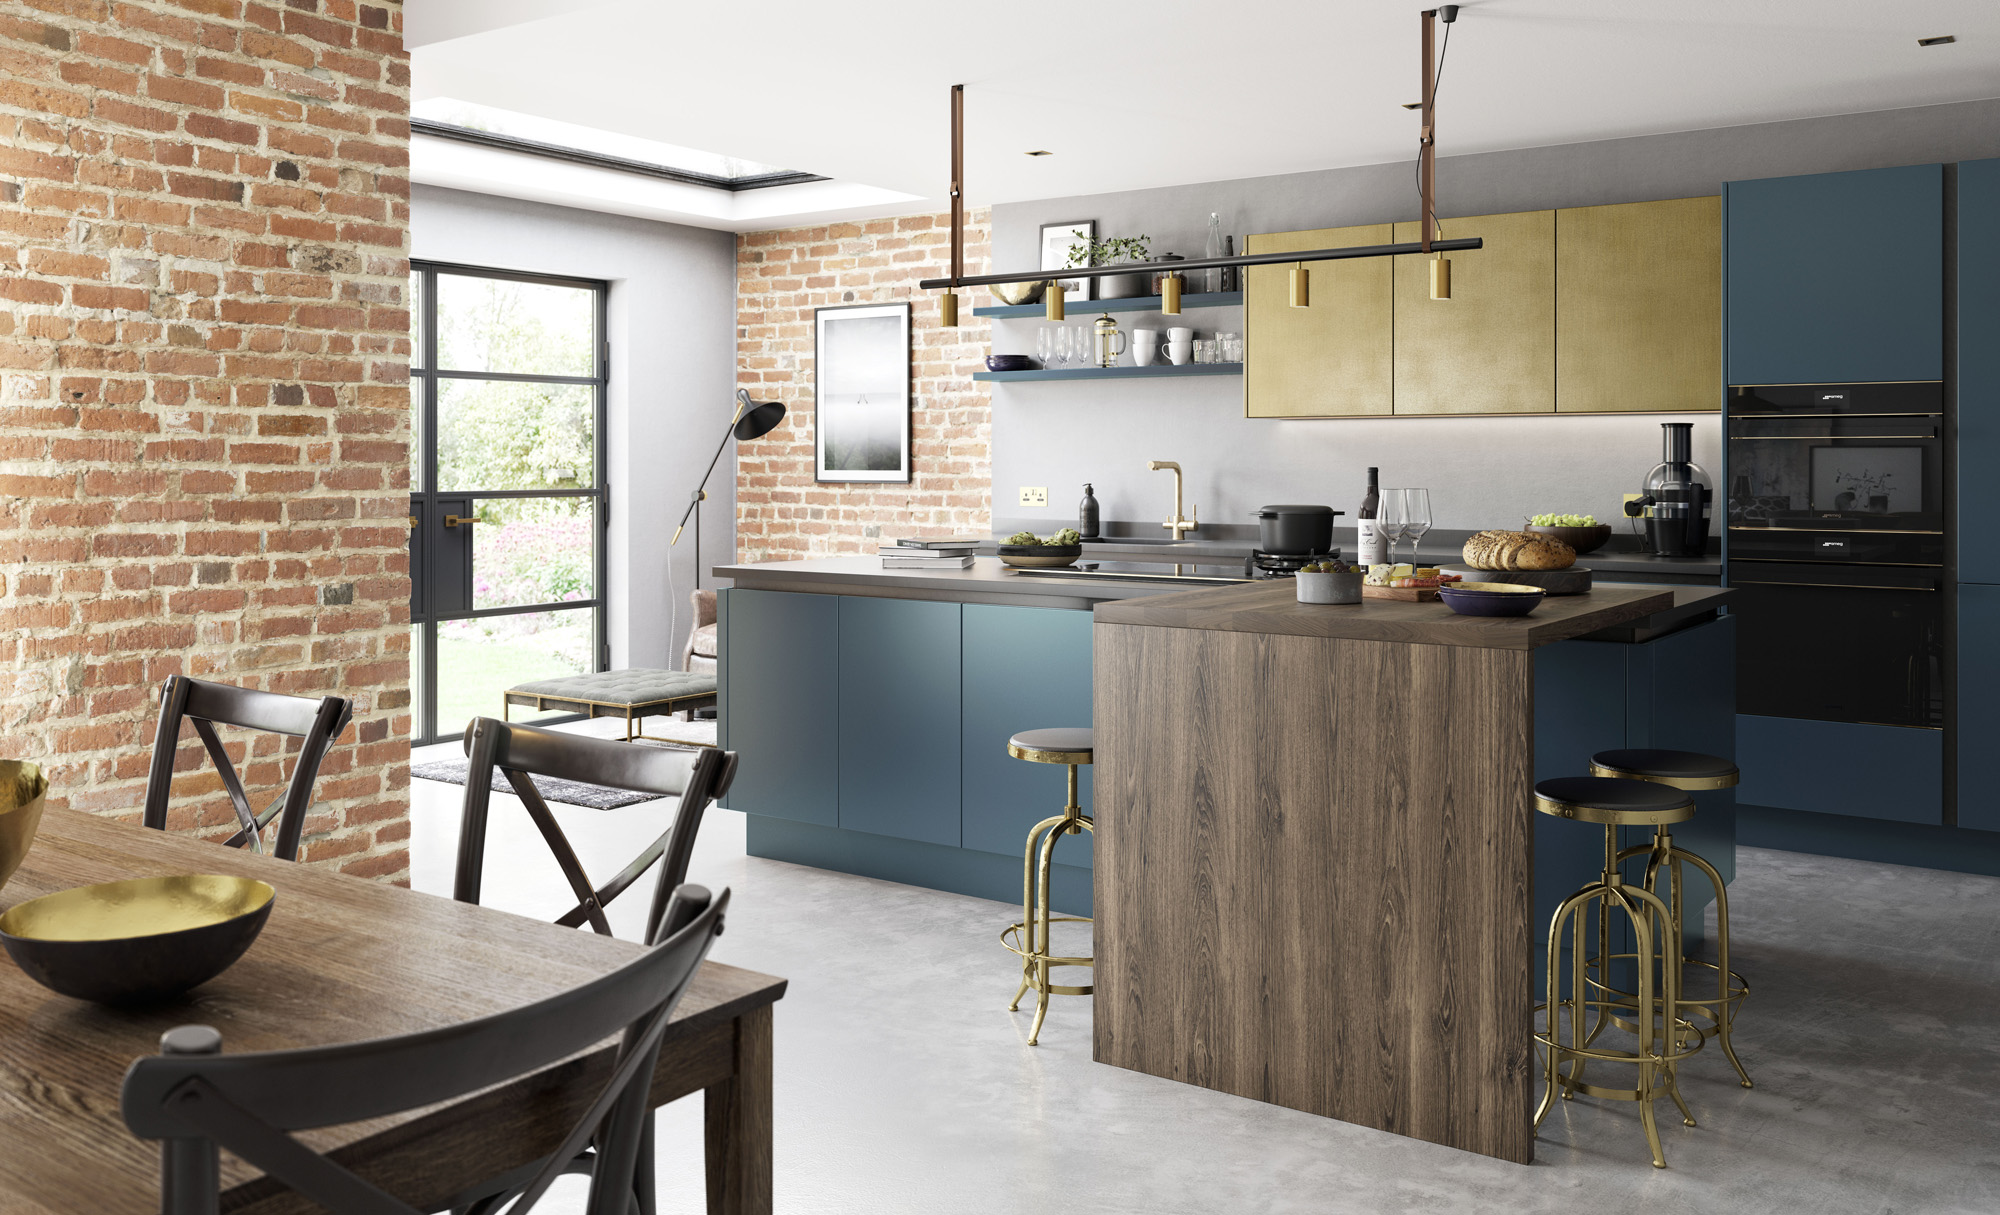 Modern Contemporary Zola Matte Kitchen in Dark Blue Featuring Ferro in Painted Brass